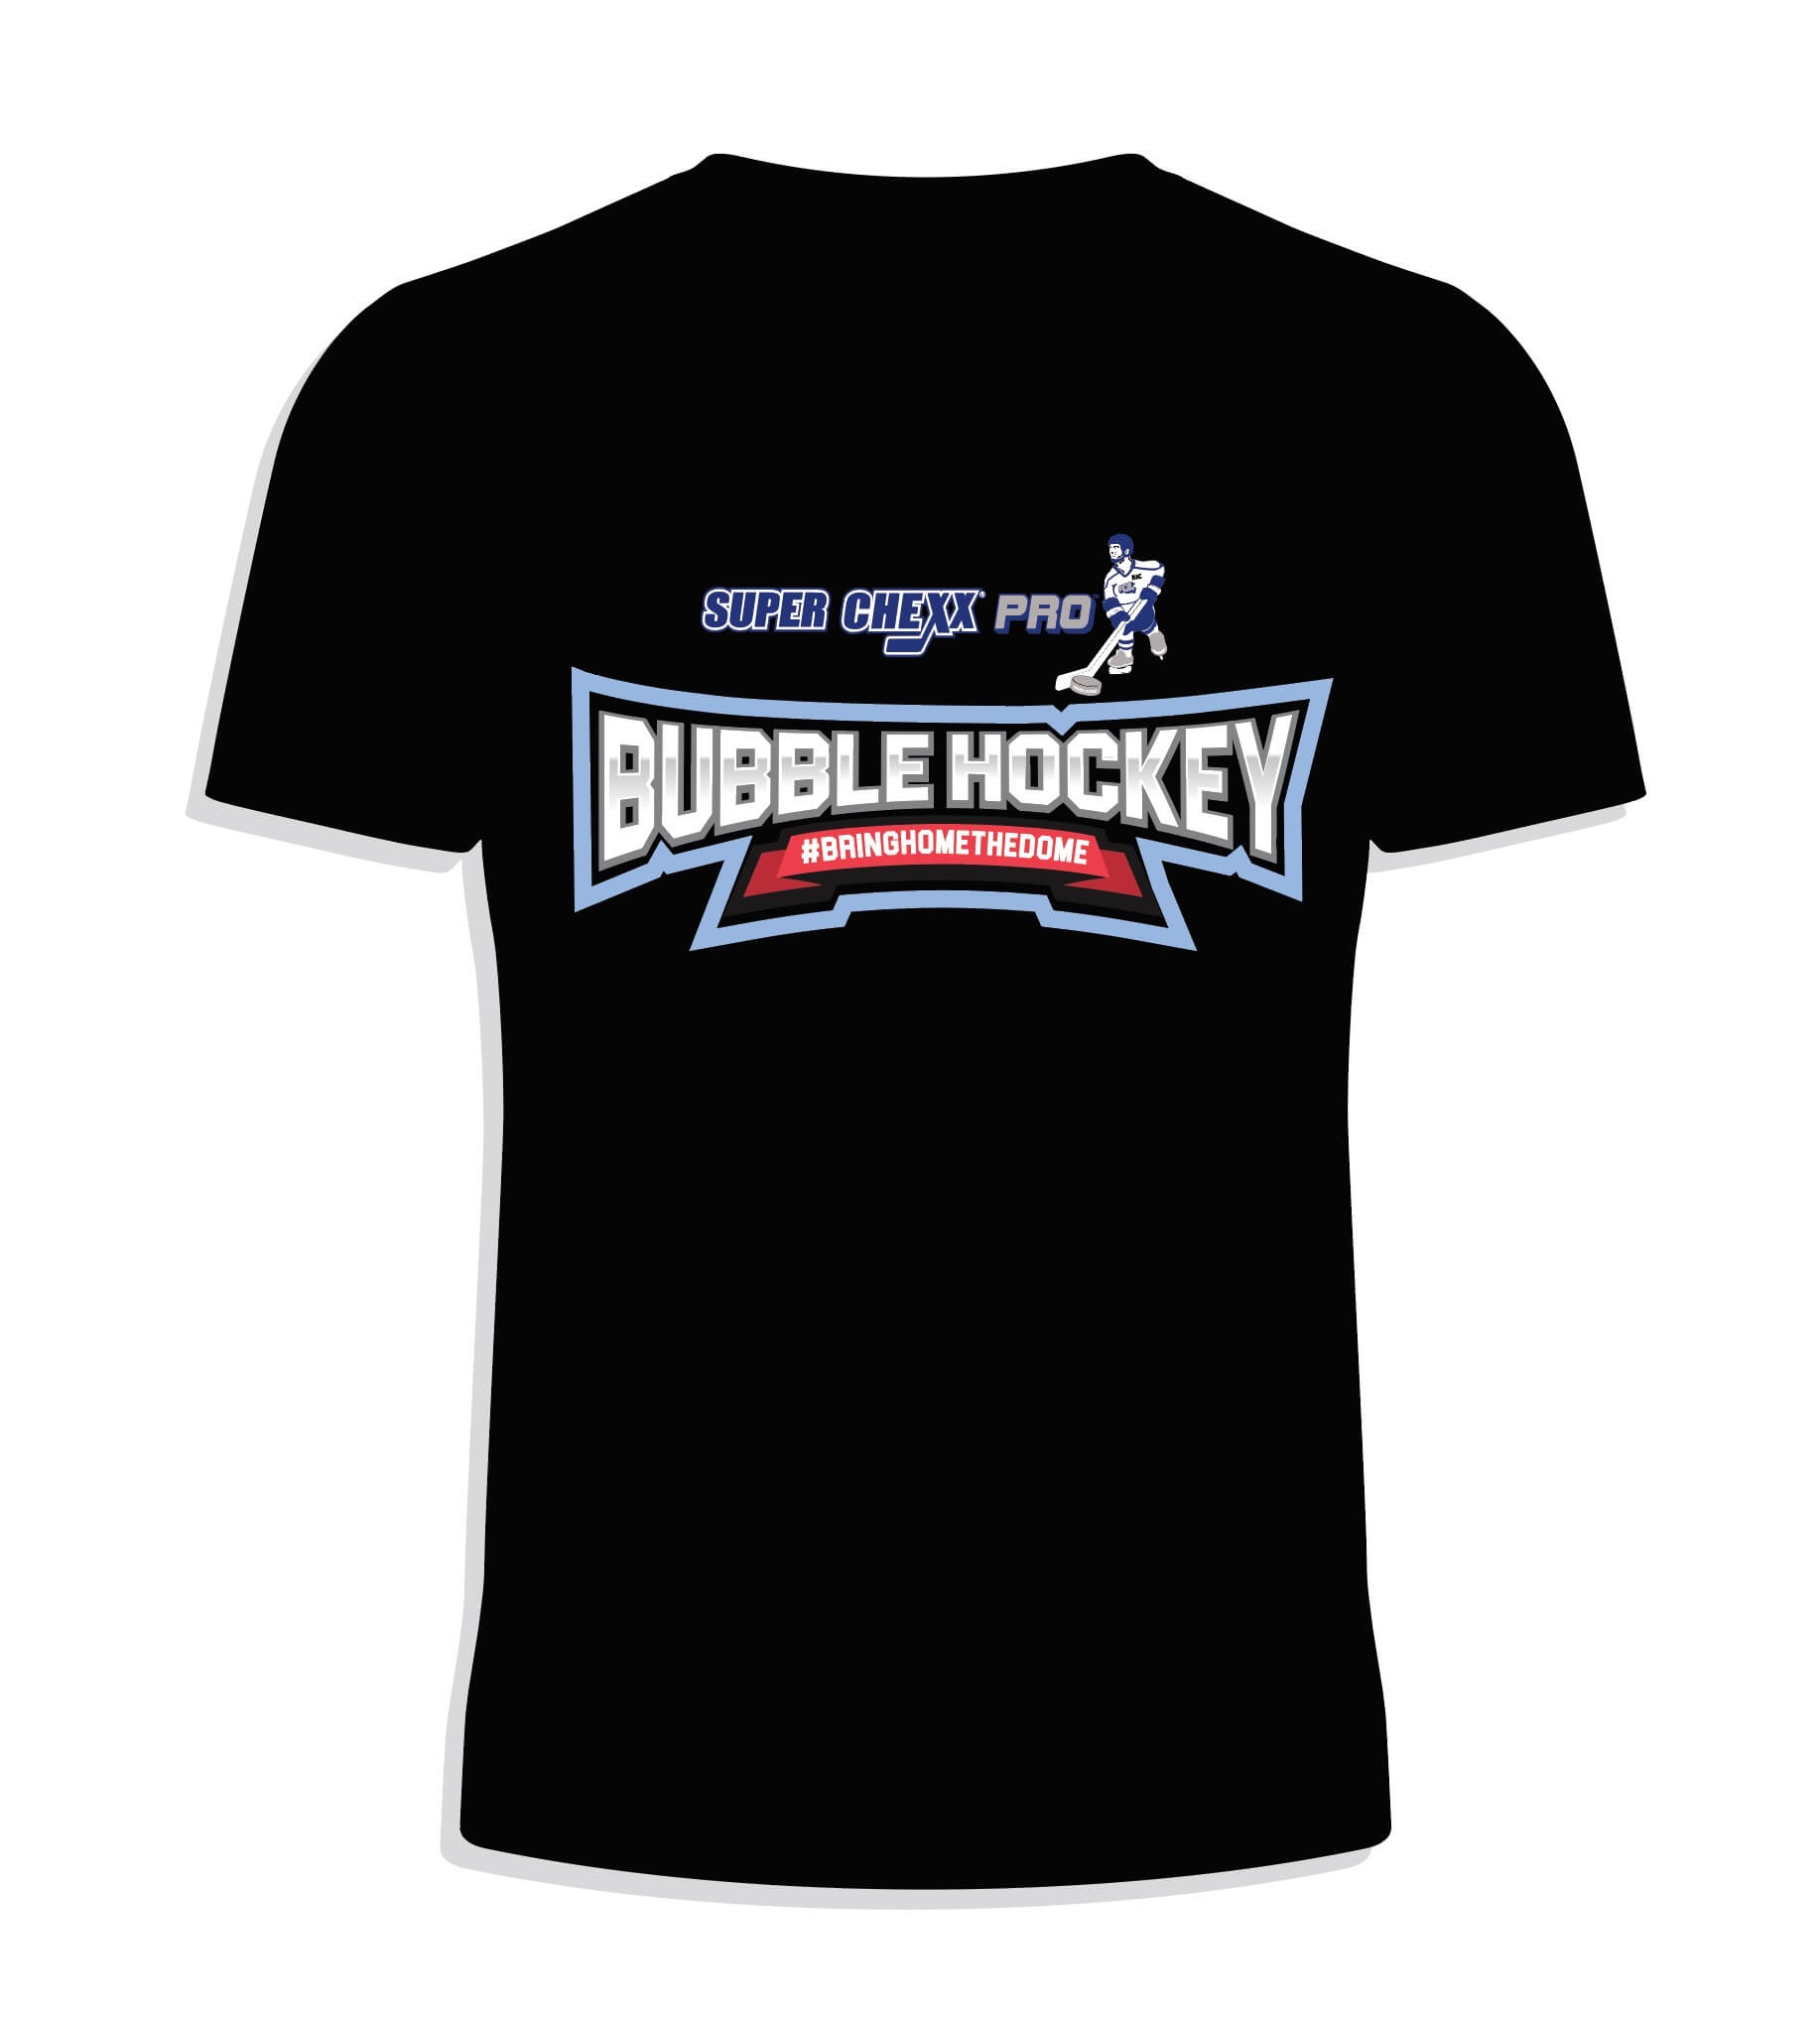 Bubblehockey T-shirt